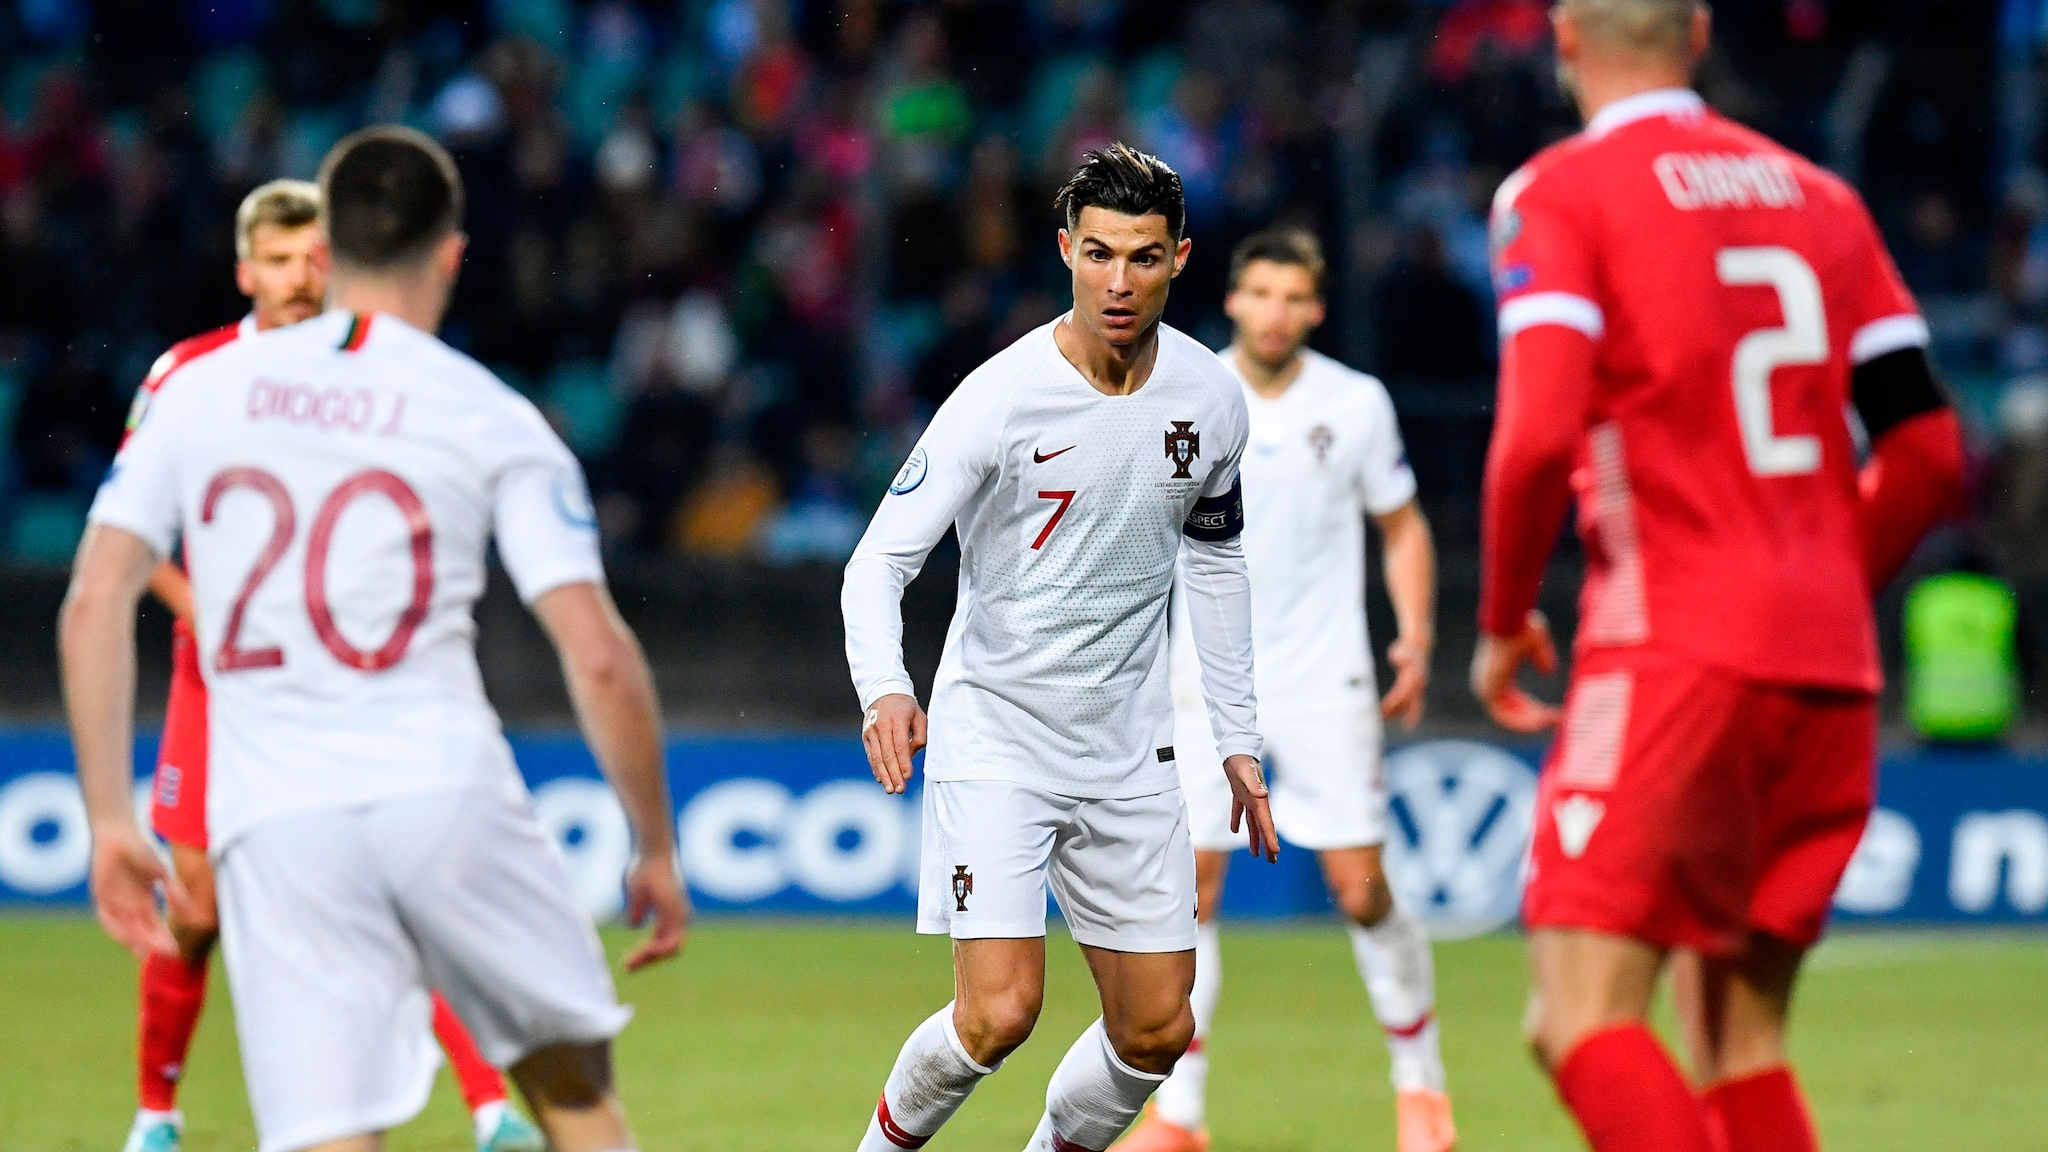 France Portugal Euro 2020 Calendrier.Highlights Luxembourg 0 2 Portugal European Qualifiers